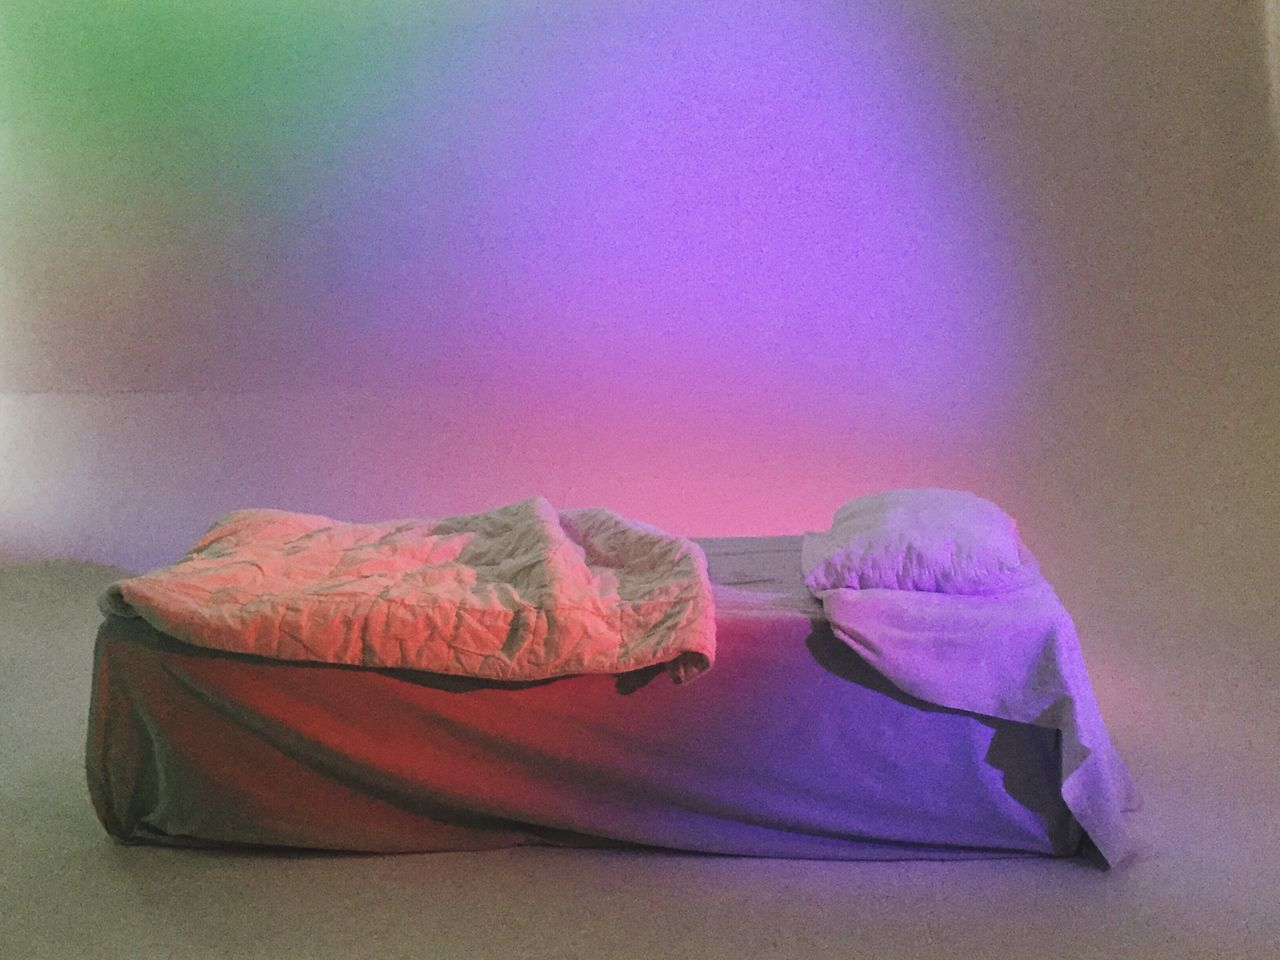 Pink Color Indoors  No People Bed Bedroom Close-up Minimalism Colors Colorful Studio Shot Still Life Goodnight Day Bedcover